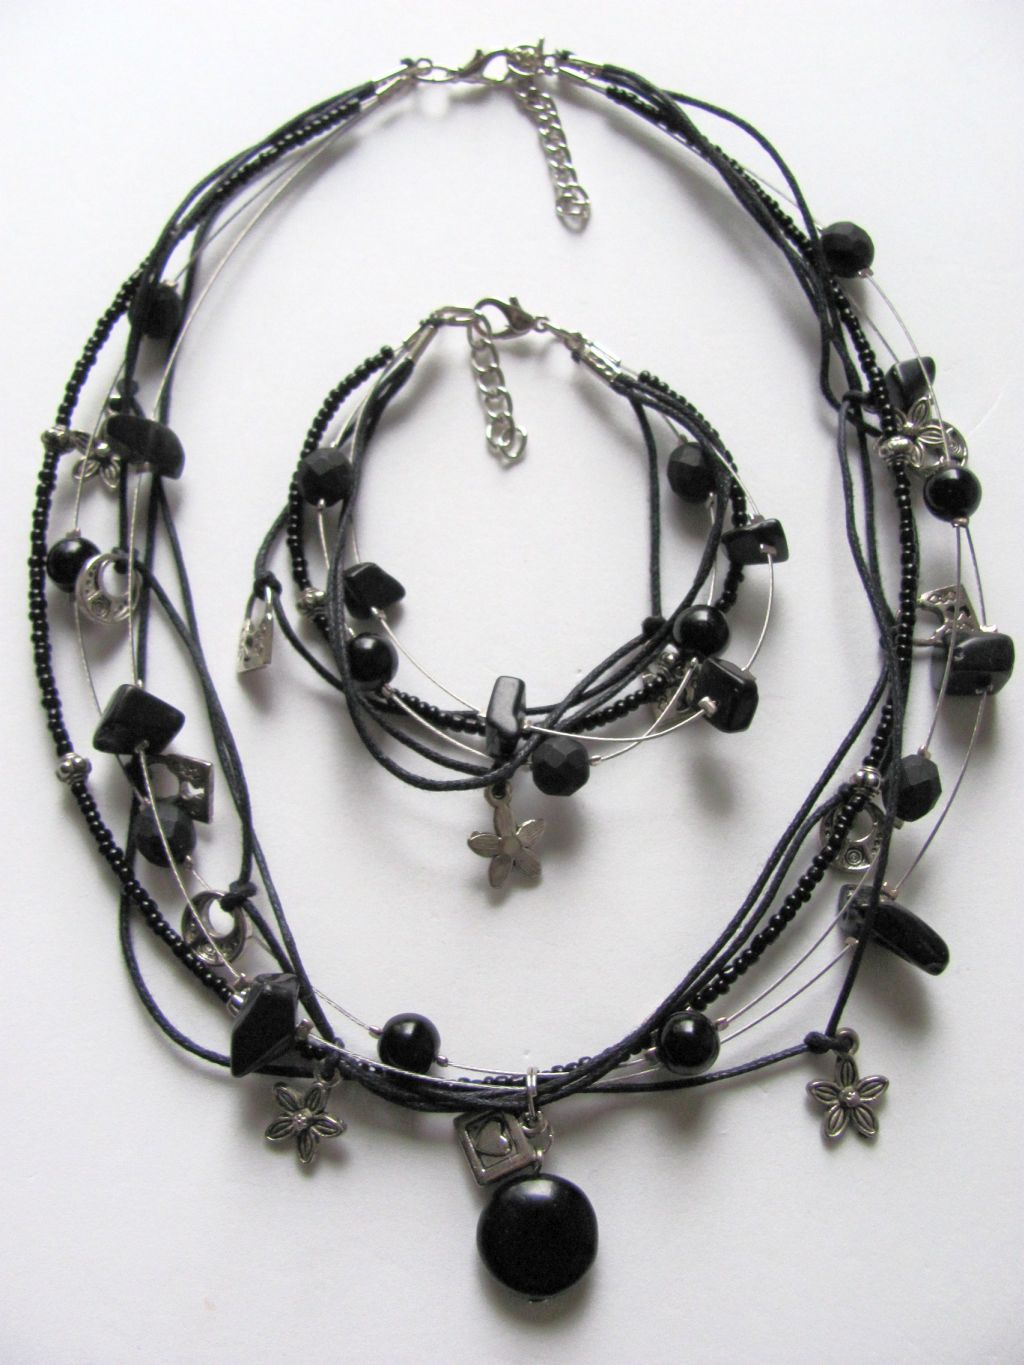 Black Onyx Pendant Heart Flower Lock Charm Necklace Bracelet Set